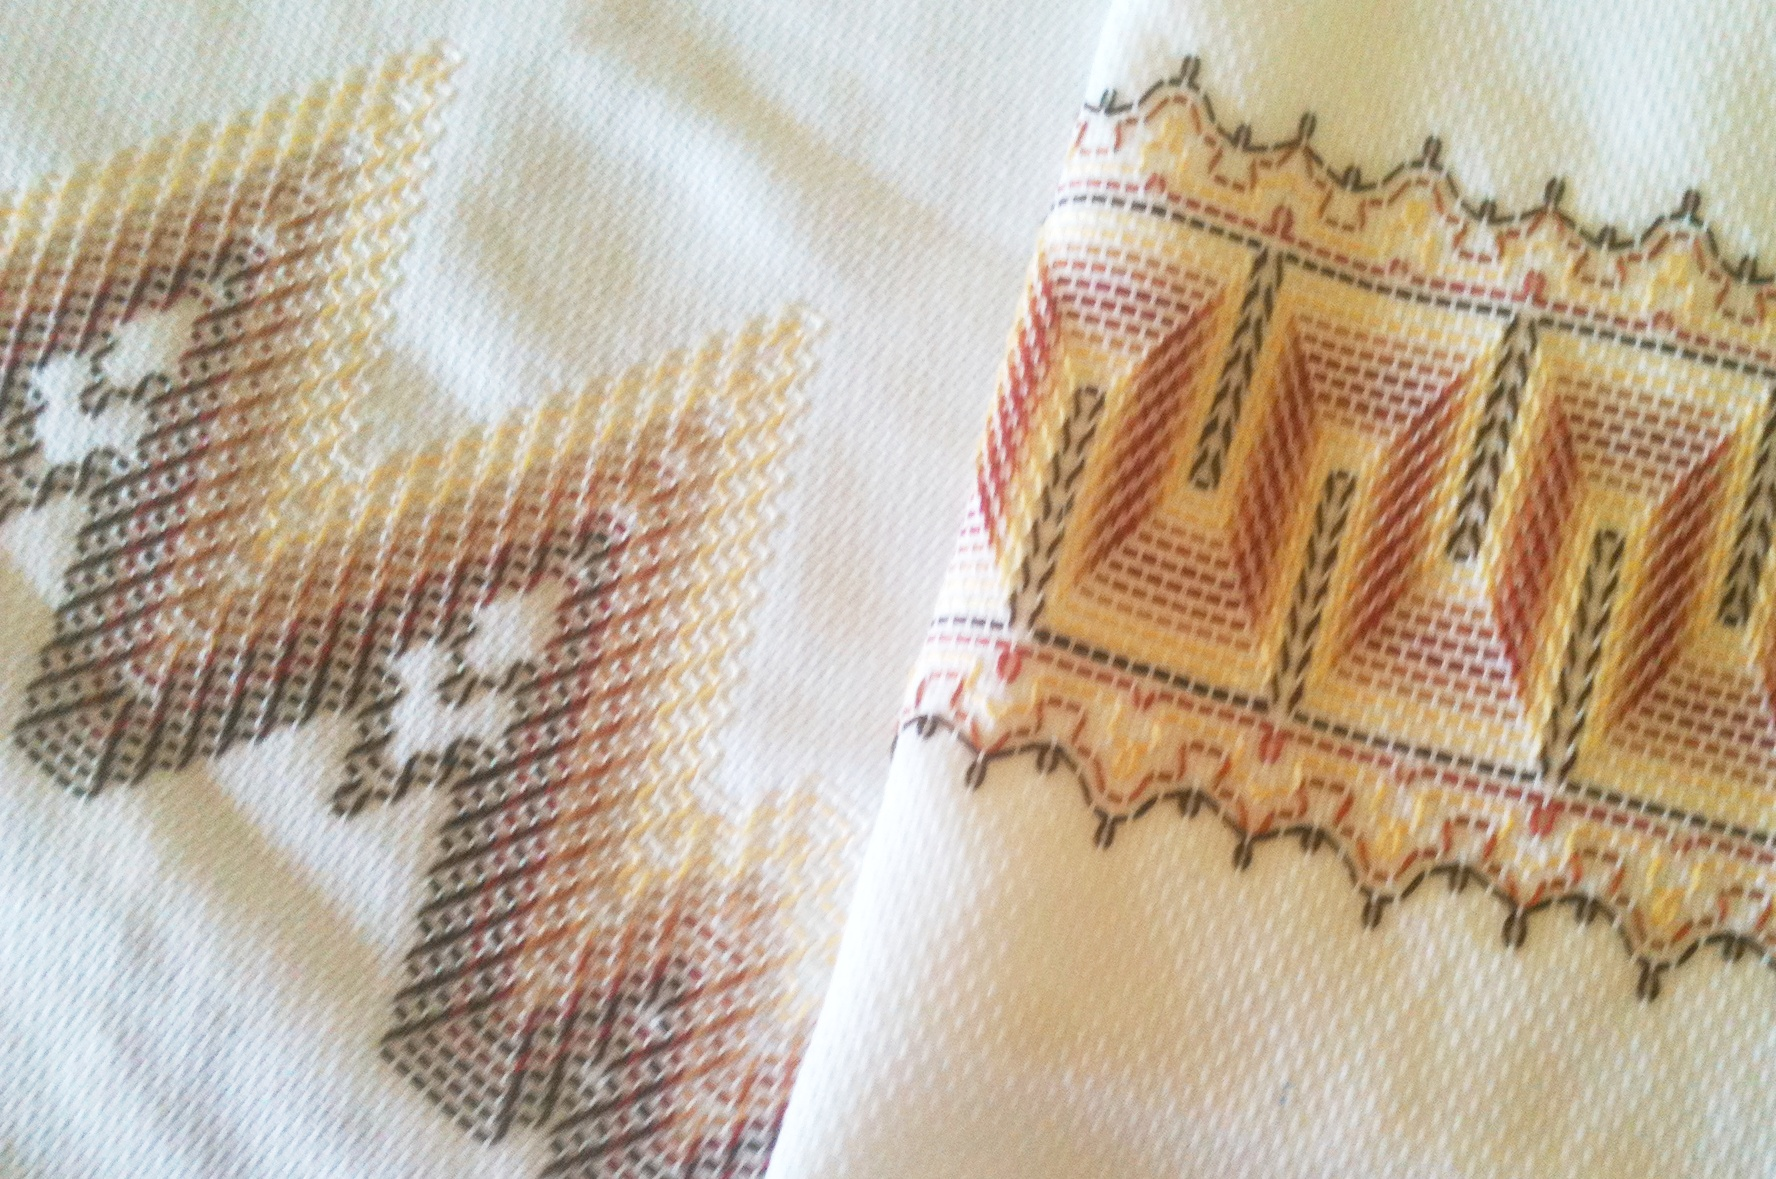 Huck Embroidered Towels Stash Couture Huck Towels The Destashification  Project